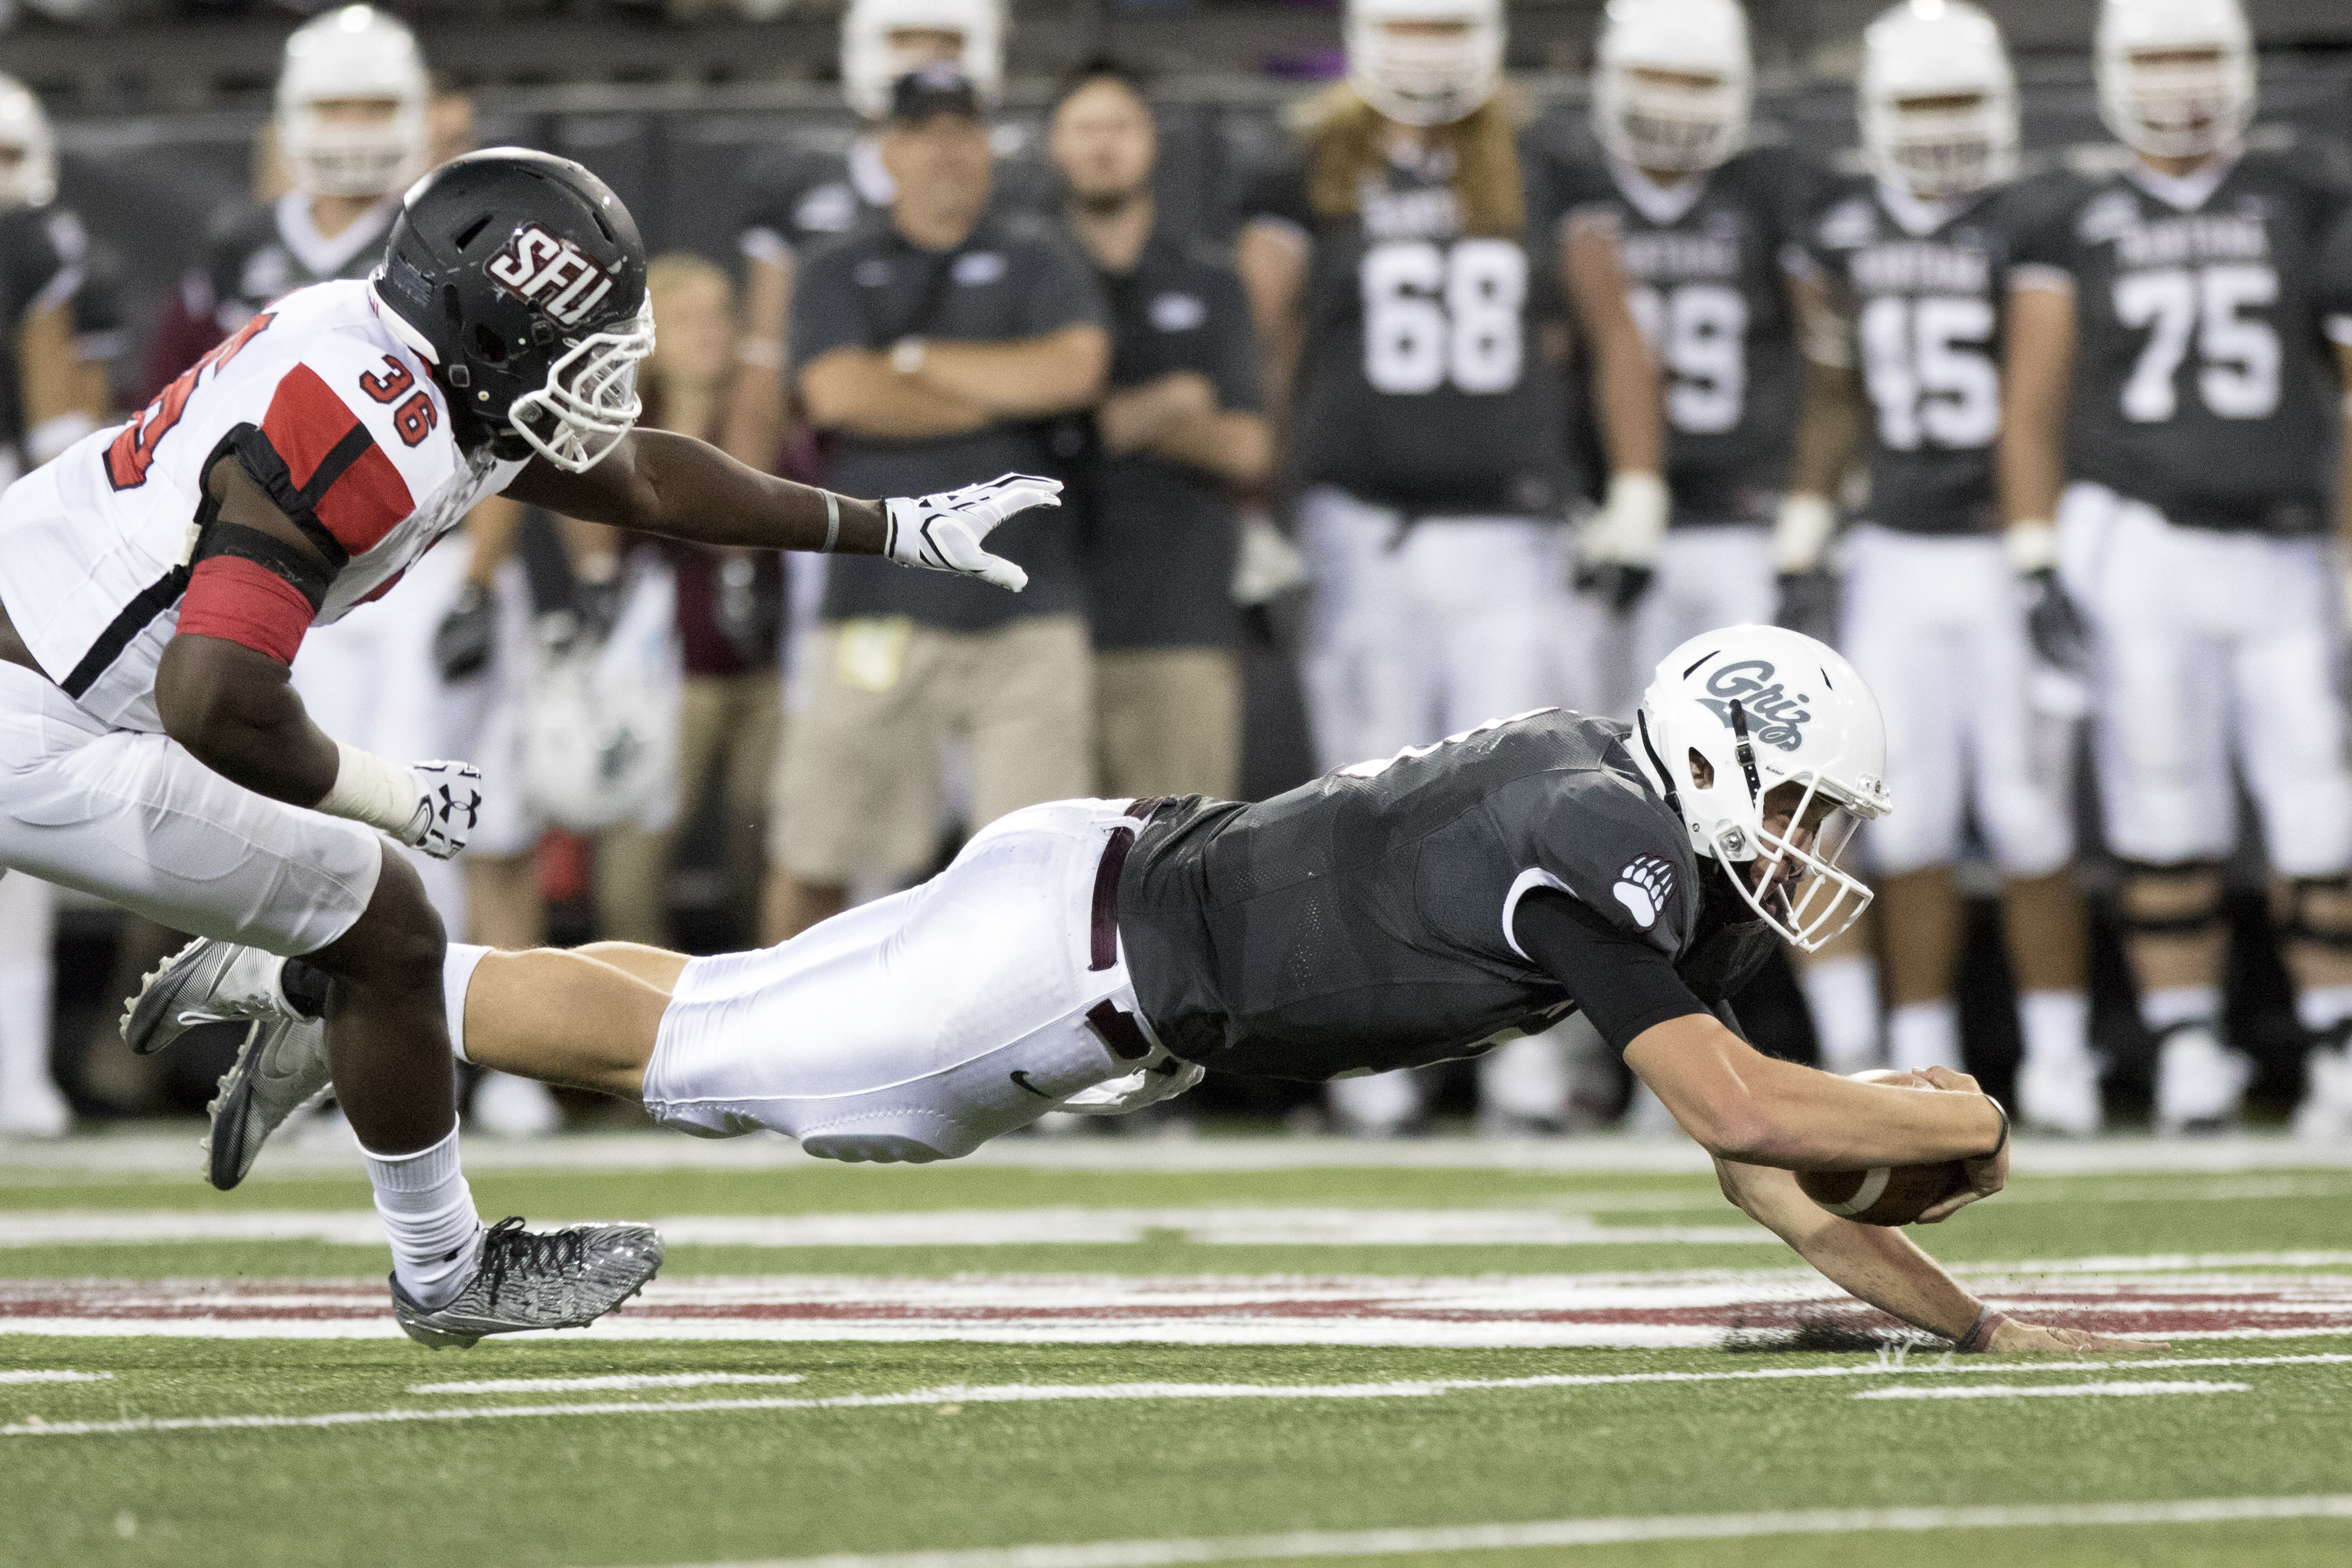 Montana quarterback Brady Gustafson (3) dives for yardage against St. Francis in the first half of an NCAA college football game Saturday, Sept. 3, 2016, in Missoula, Mont. (AP Photo/Patrick Record)